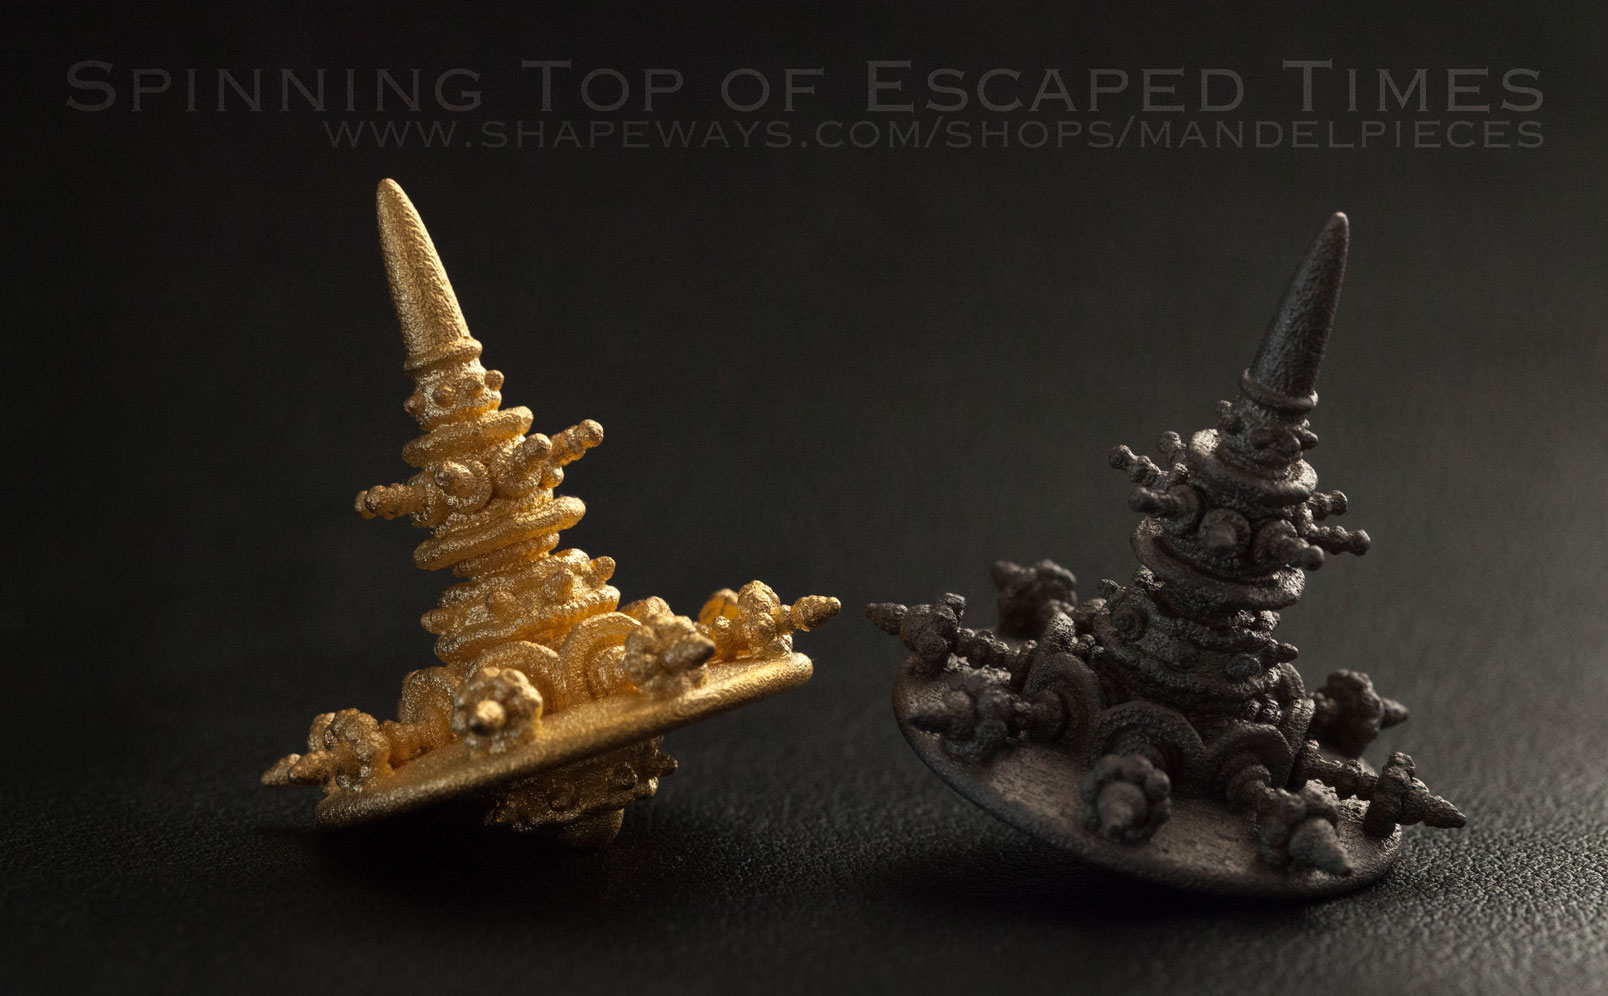 3D printed fractal Spinning top of Escaped Times